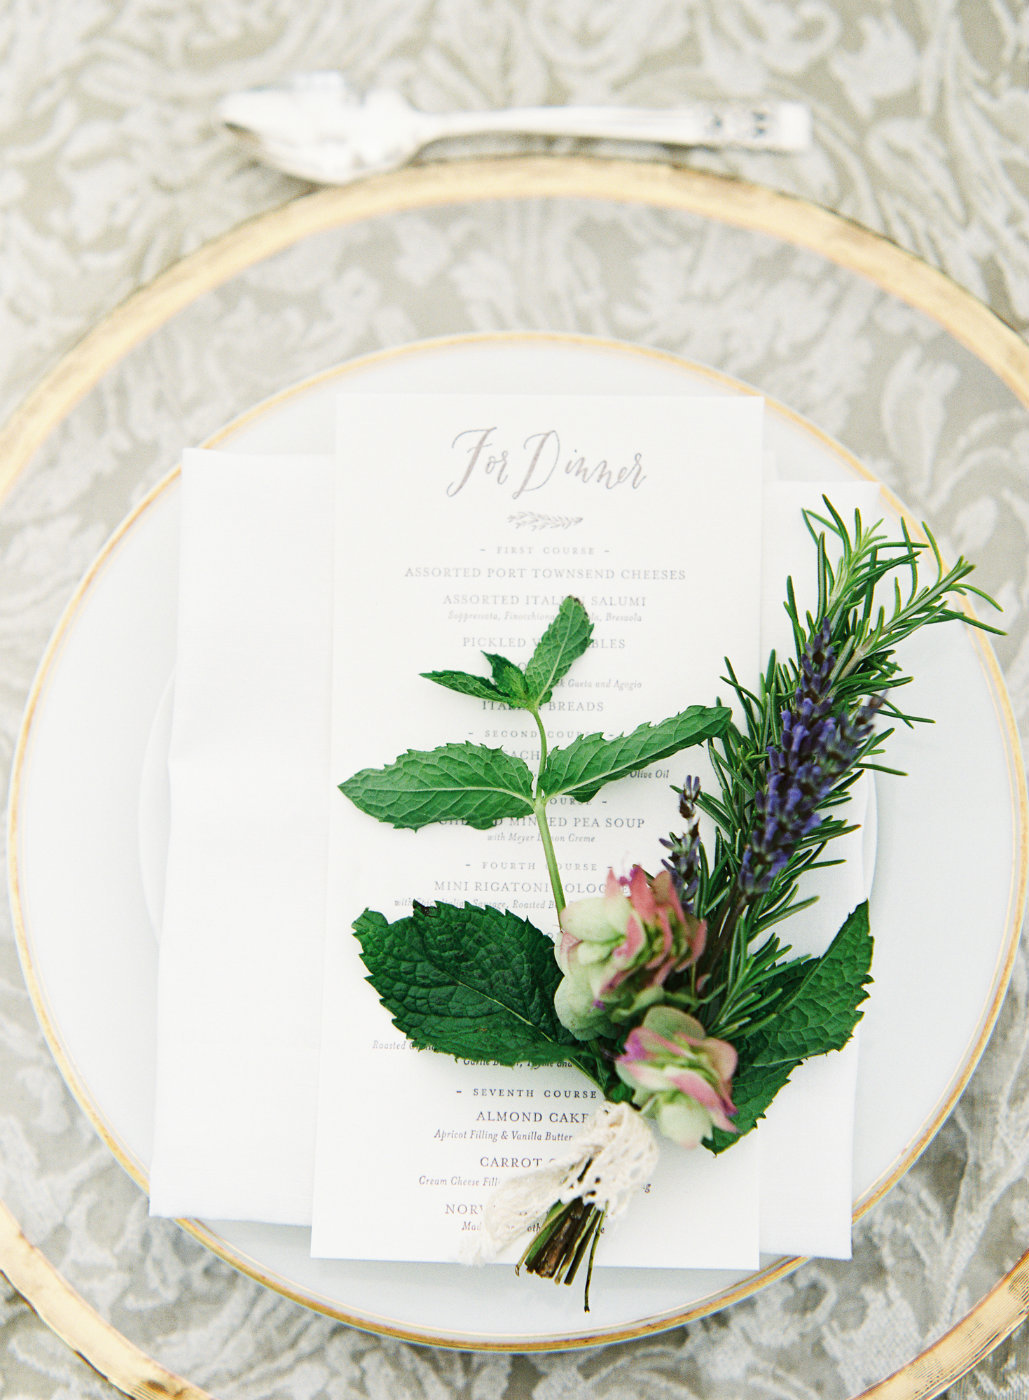 At our luxury tent wedding  each place setting had a hand tied herb posy with lavender, mint, basil and rosemary.